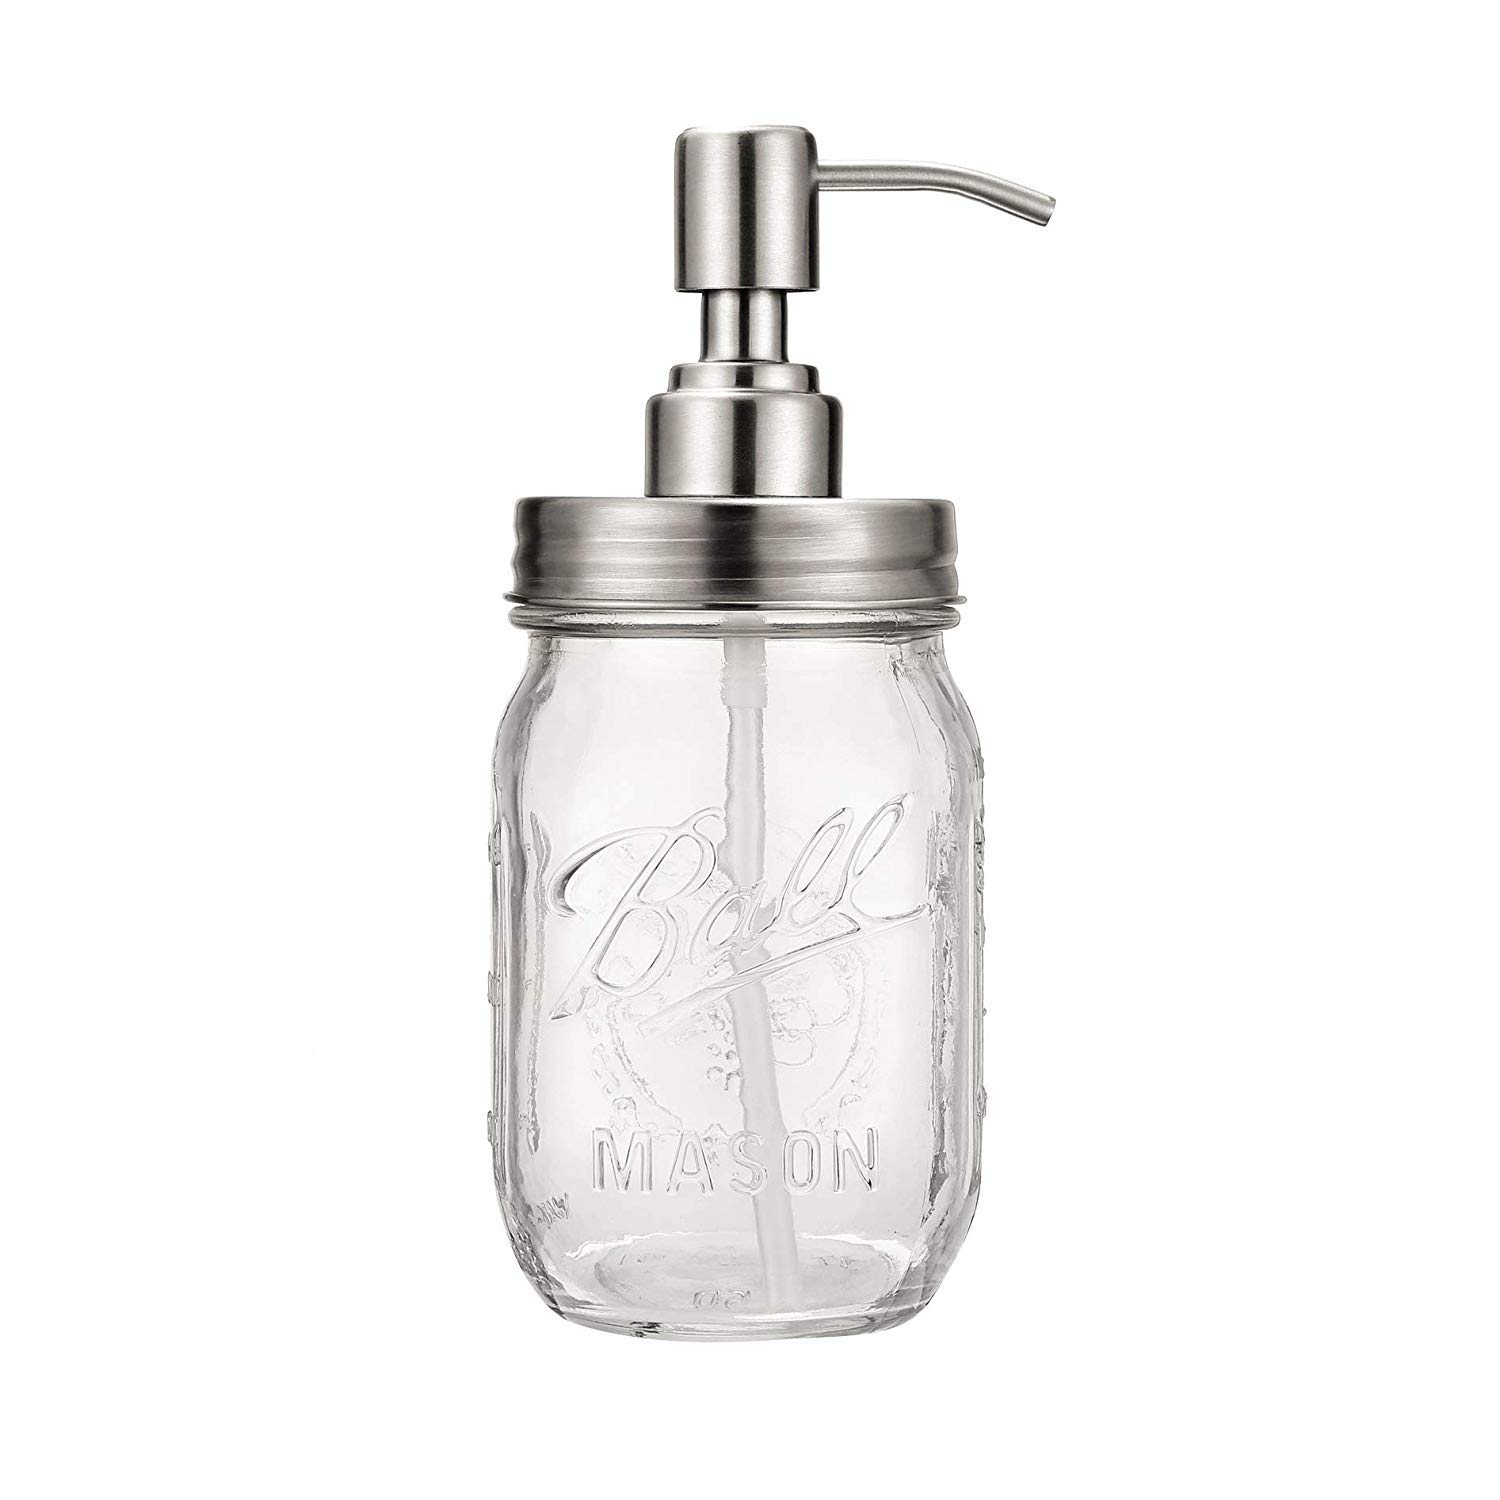 Products Mason Jar Soap Dispenser - Silvery - with 16 Ounce Ball Mason Jar - Made from Rust Proof Stainless Steel [Clear Glass]